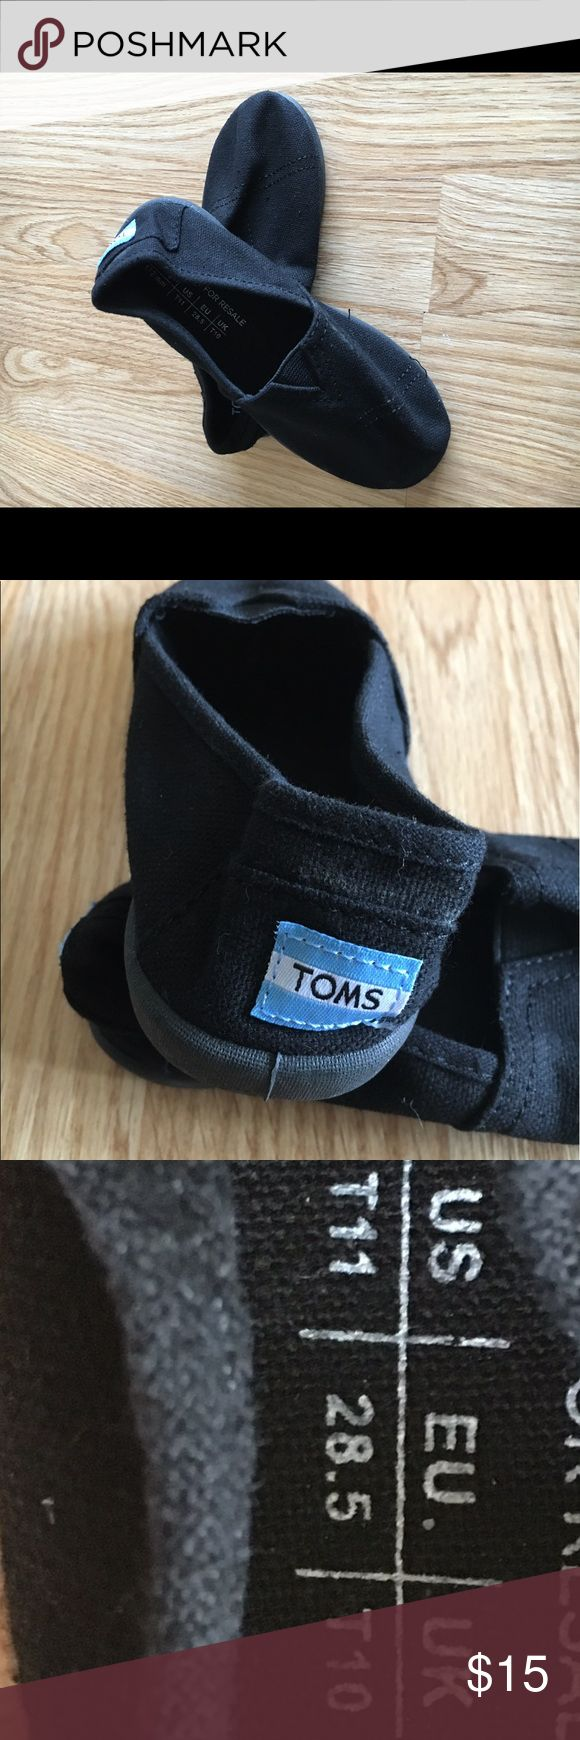 Kids Toms shoes Black Toms that are like new. Great condition, minimal wear. TOMS Shoes